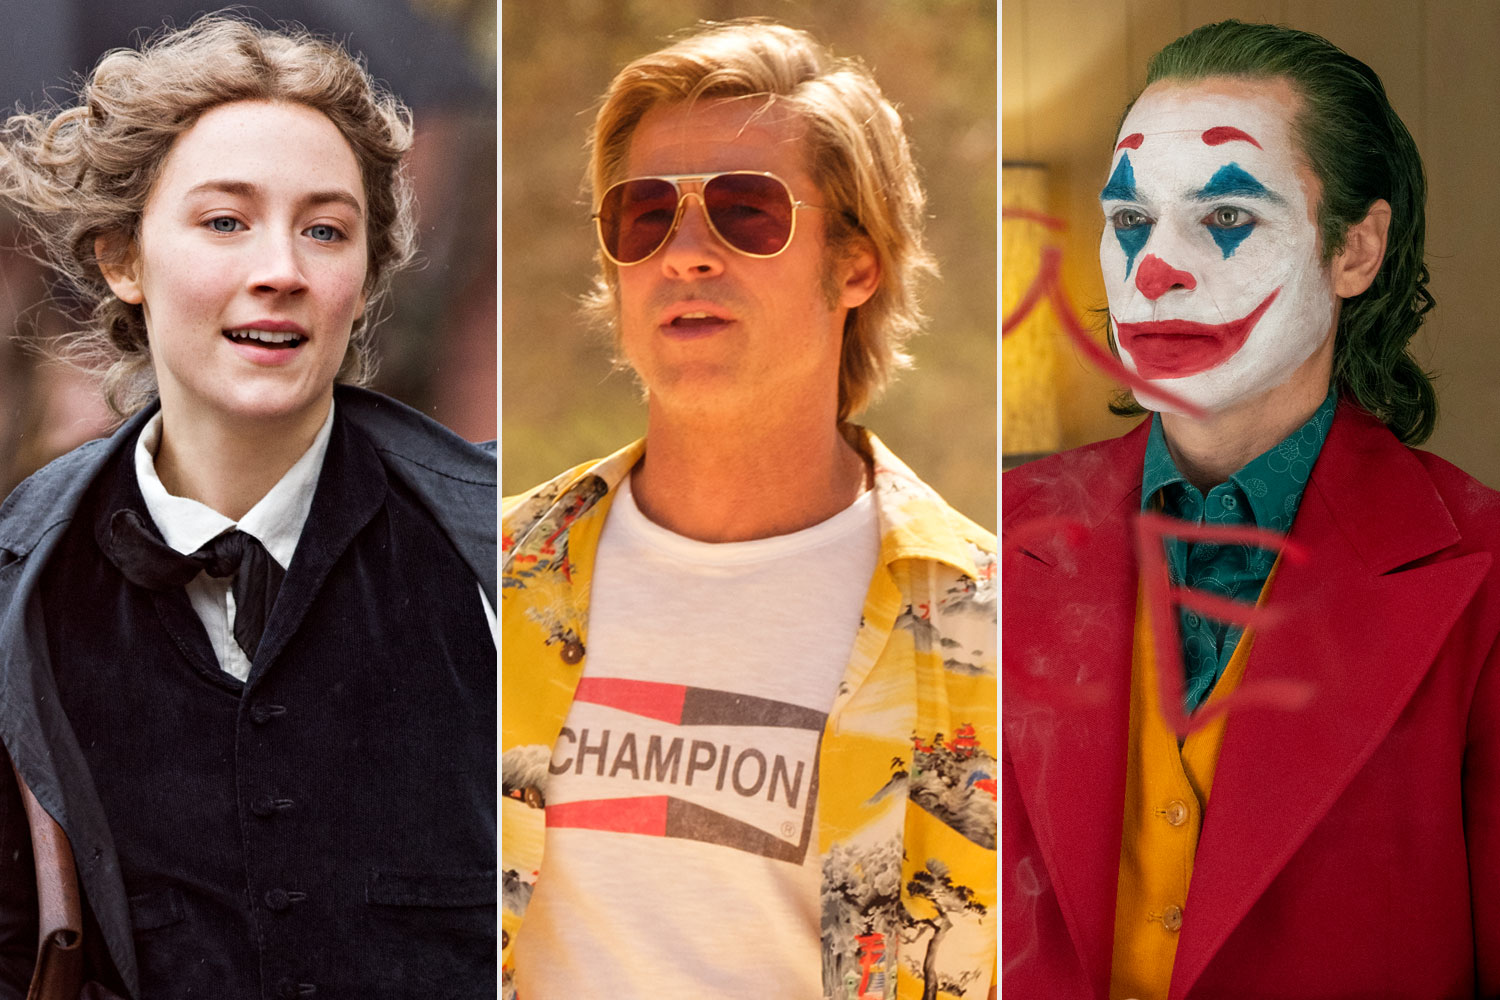 LITTLE WOMEN; Once Upon a Time in Hollywood; Joker